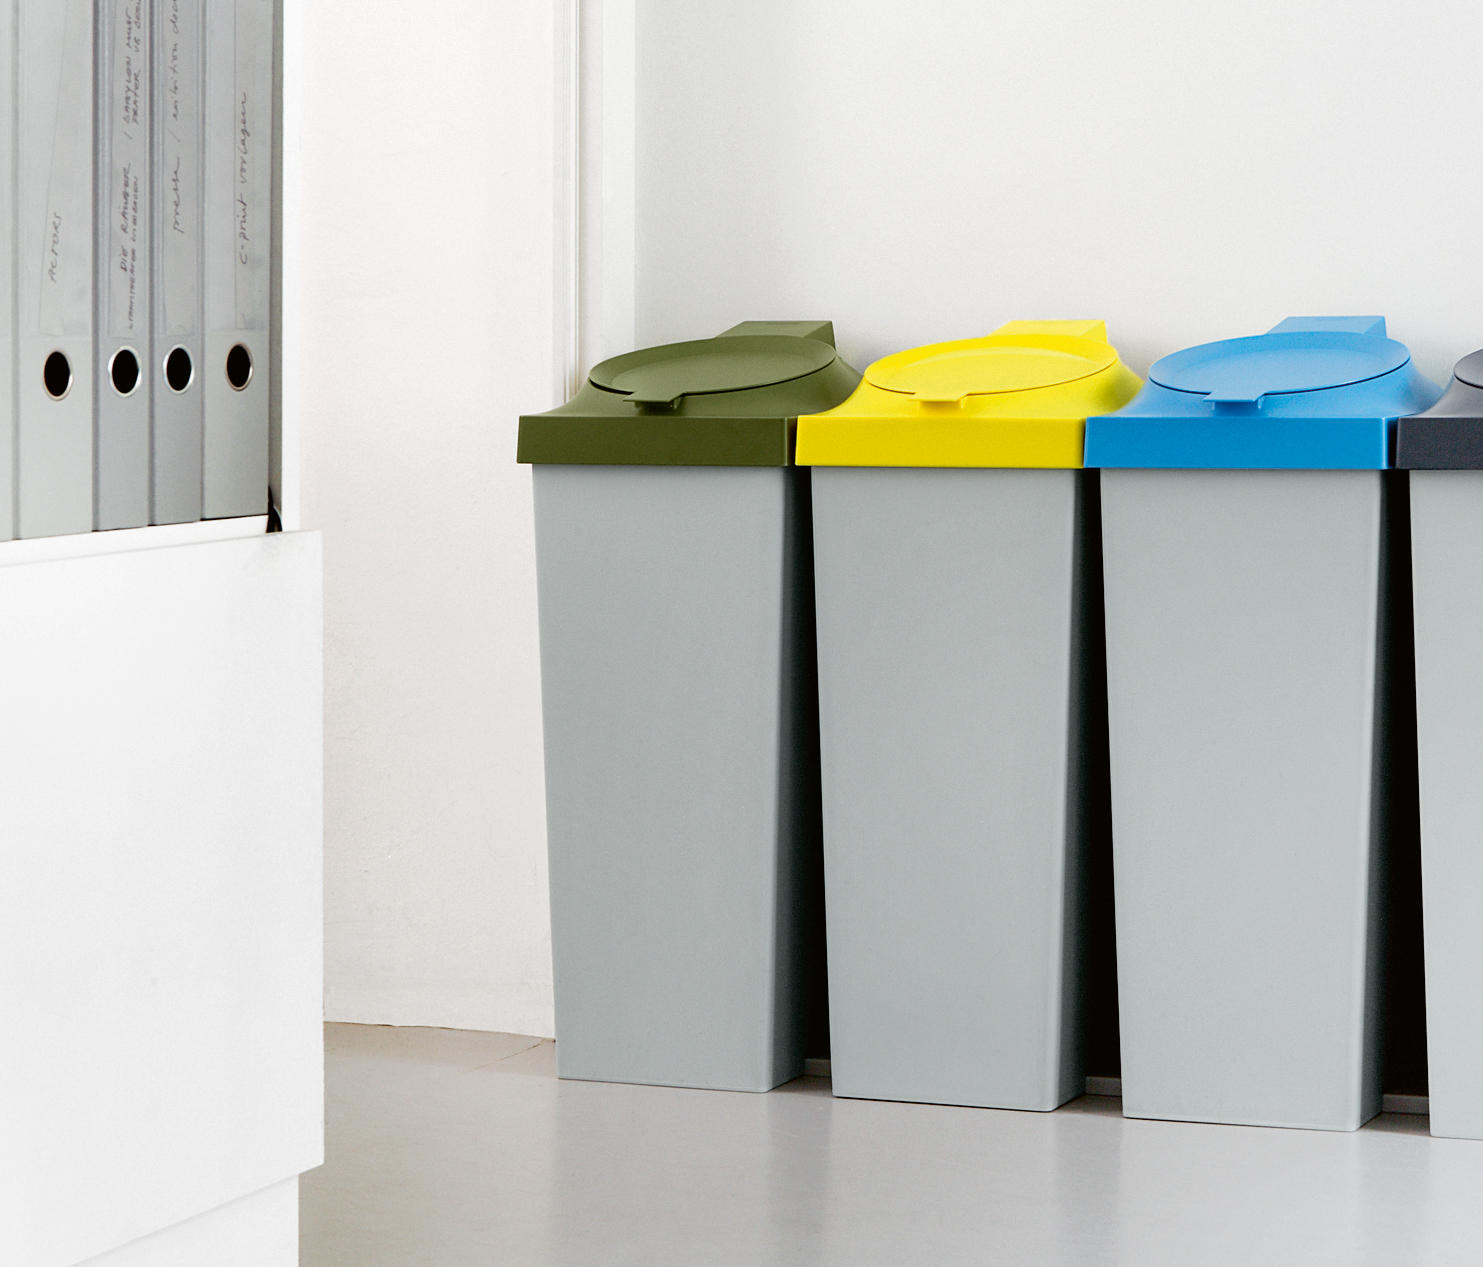 Top Waste Baskets From Authentics Architonic